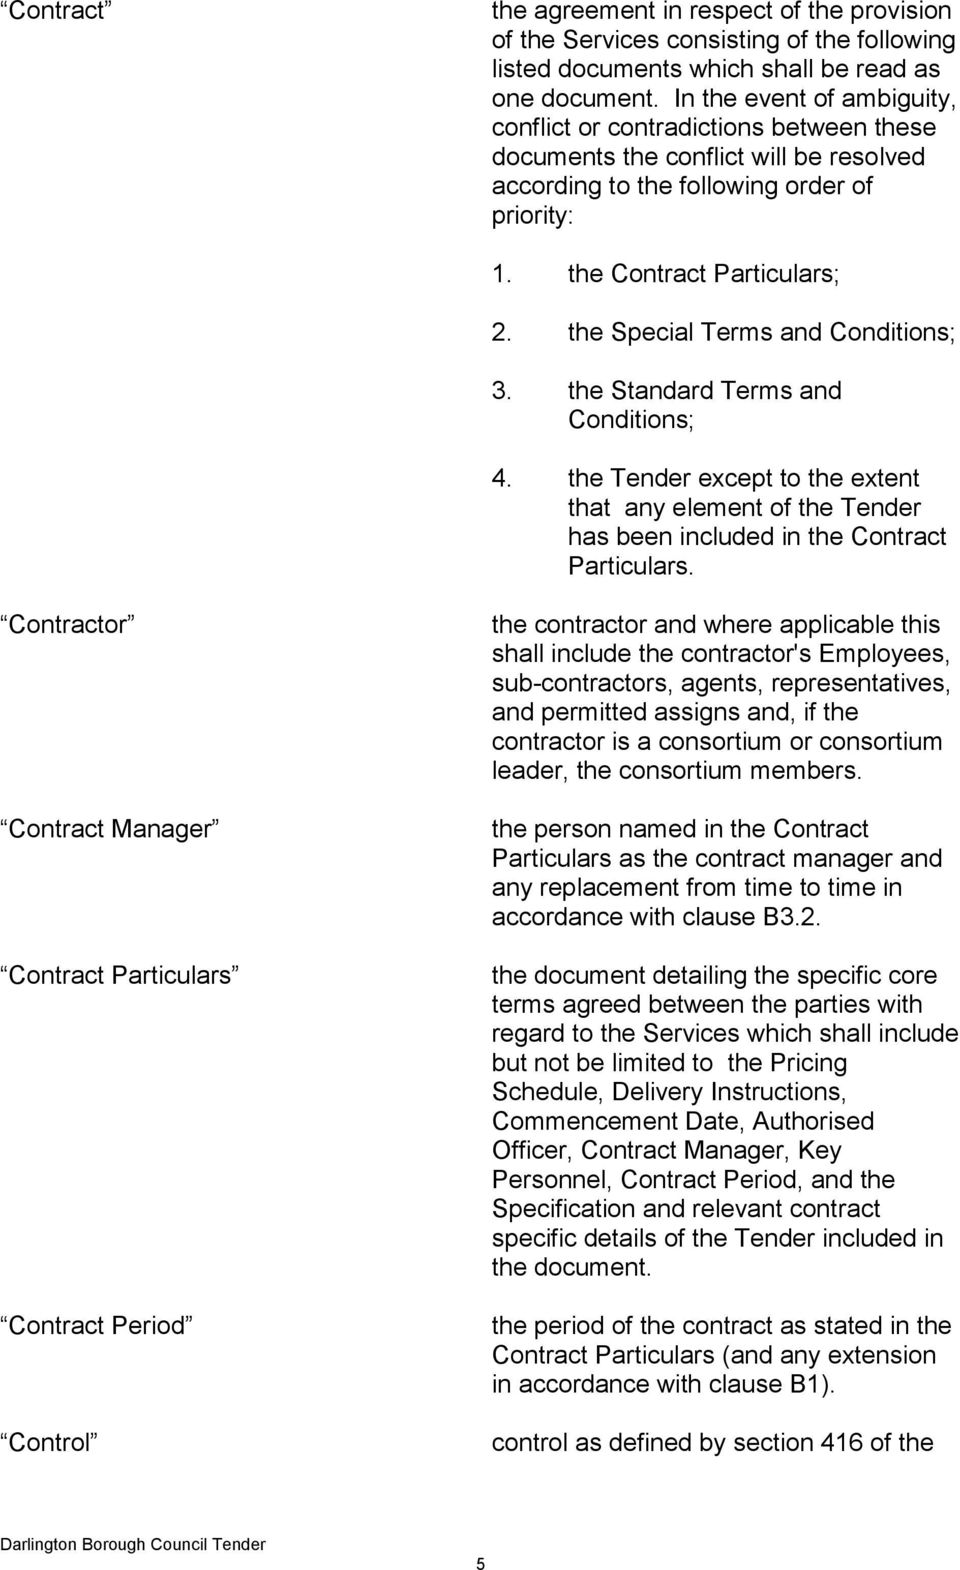 the Special Terms and Conditions; 3. the Standard Terms and Conditions; 4. the Tender except to the extent that any element of the Tender has been included in the Contract Particulars.